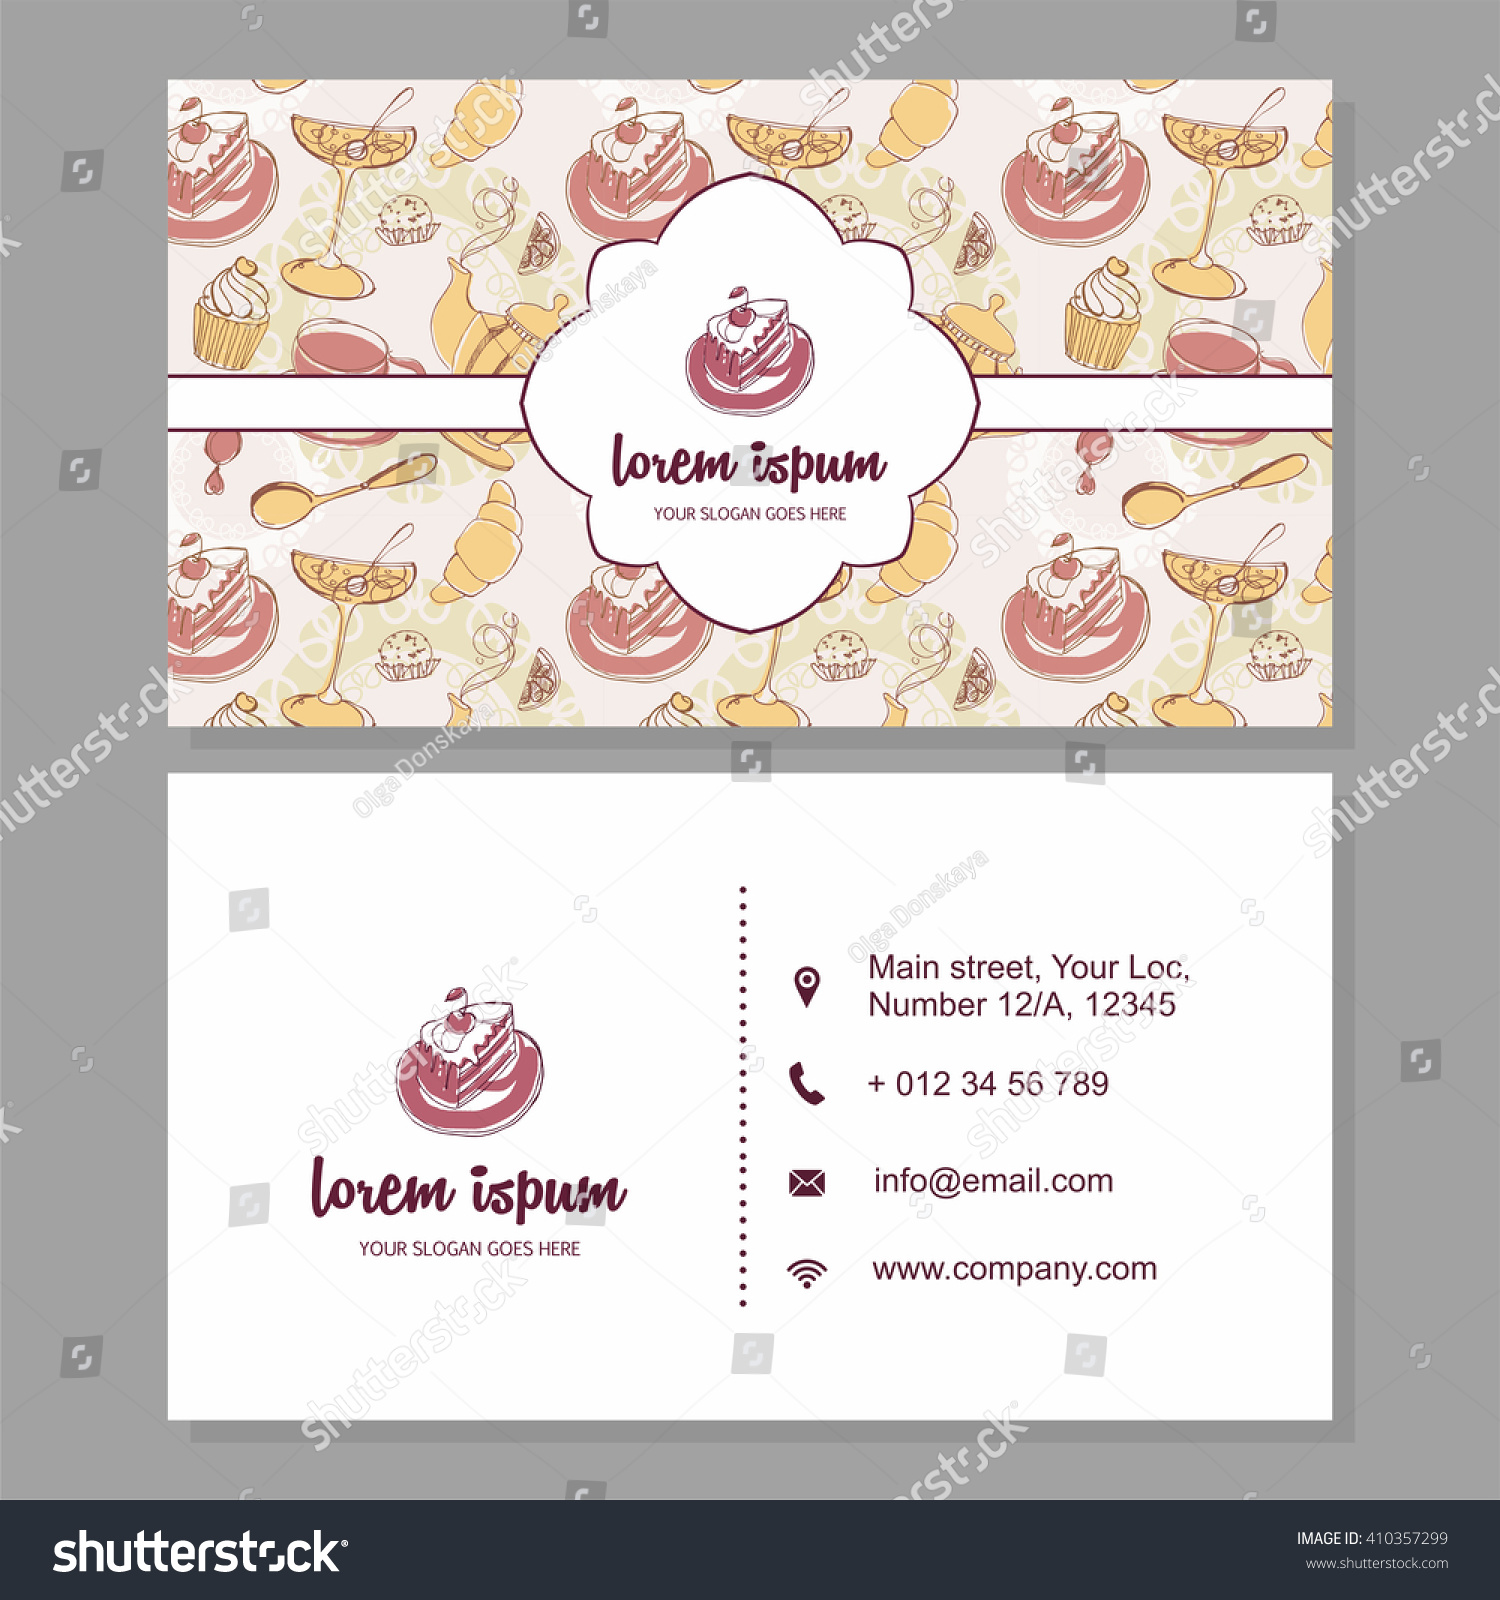 Visiting Card Business Card Cute Hand Stock Vector 410357299 ...